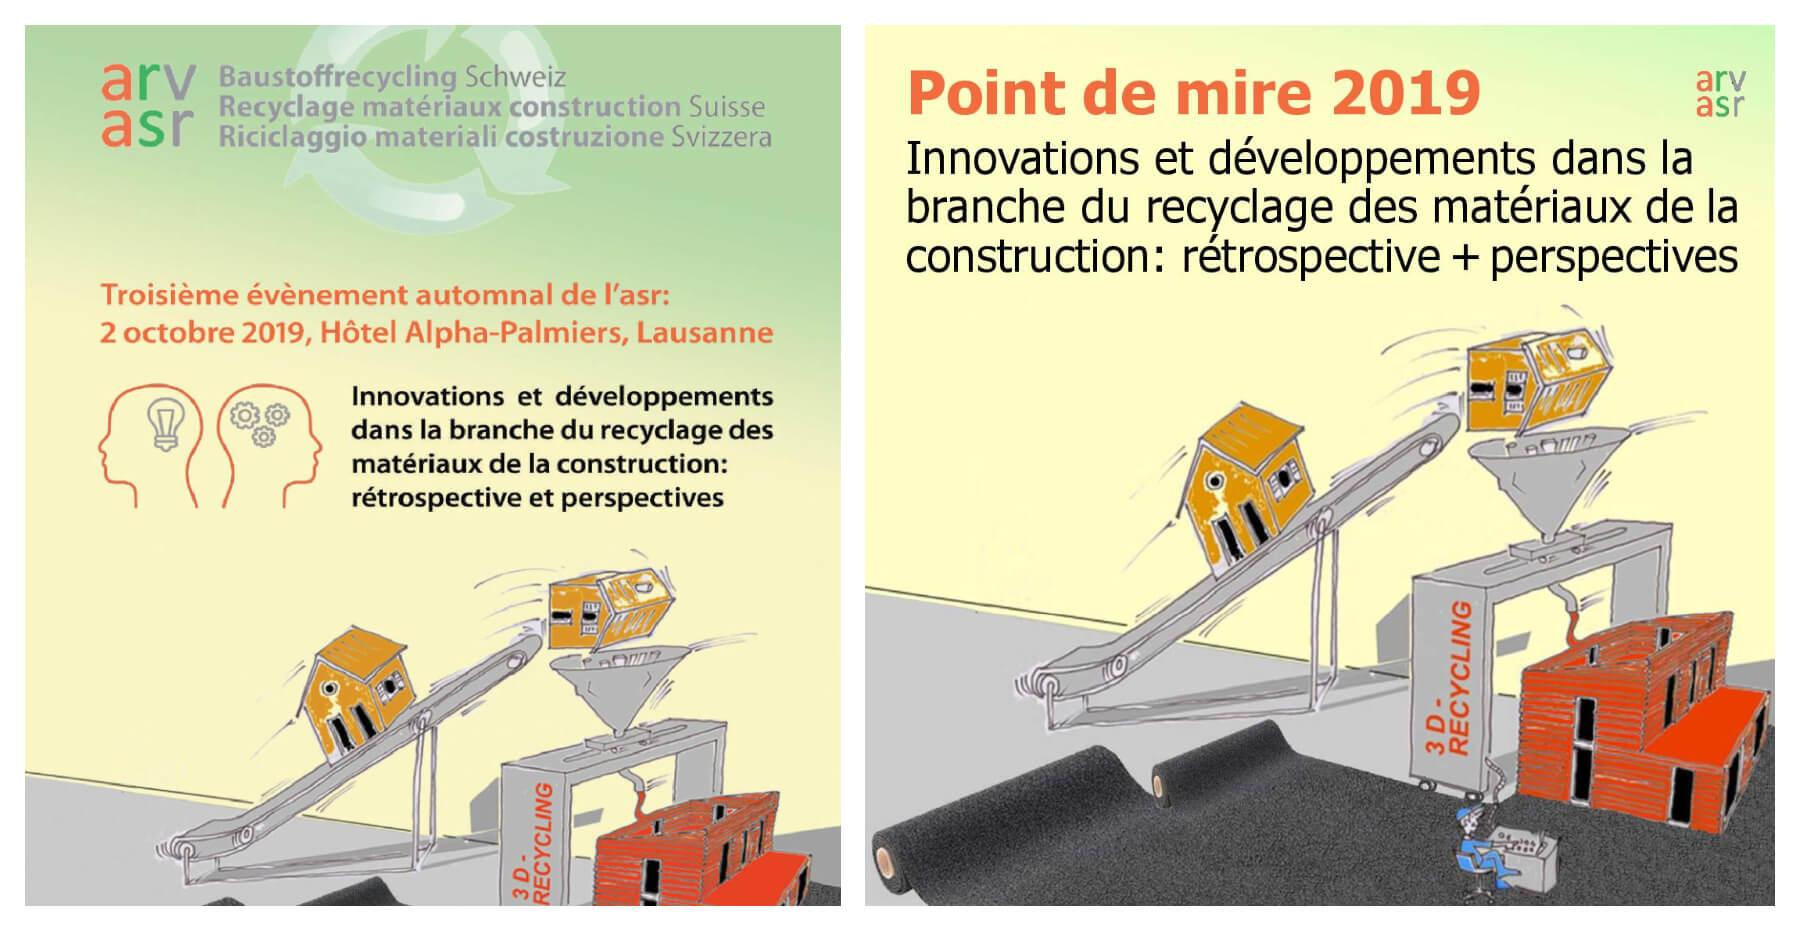 Point de mire 2019 asr